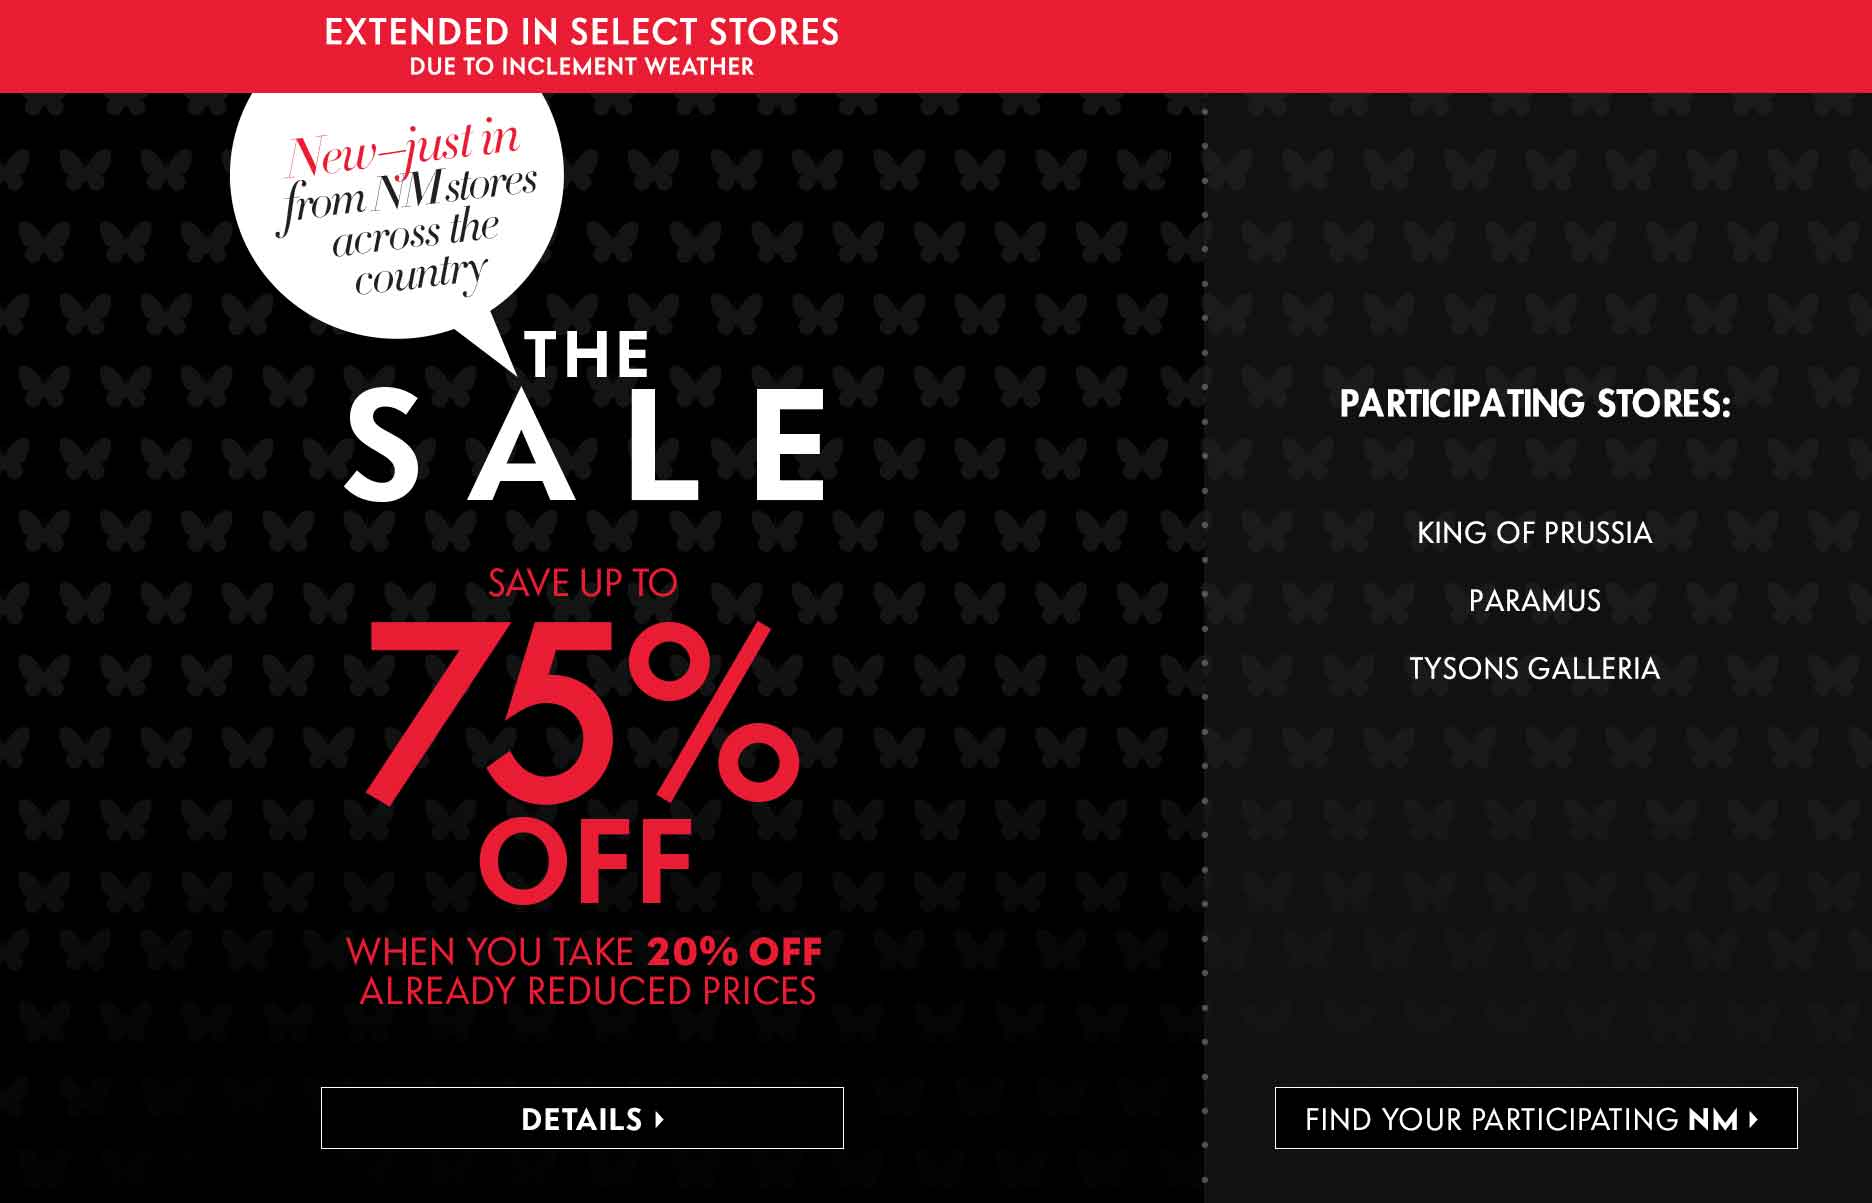 Consolidation Sale Extended at Neiman Marcus